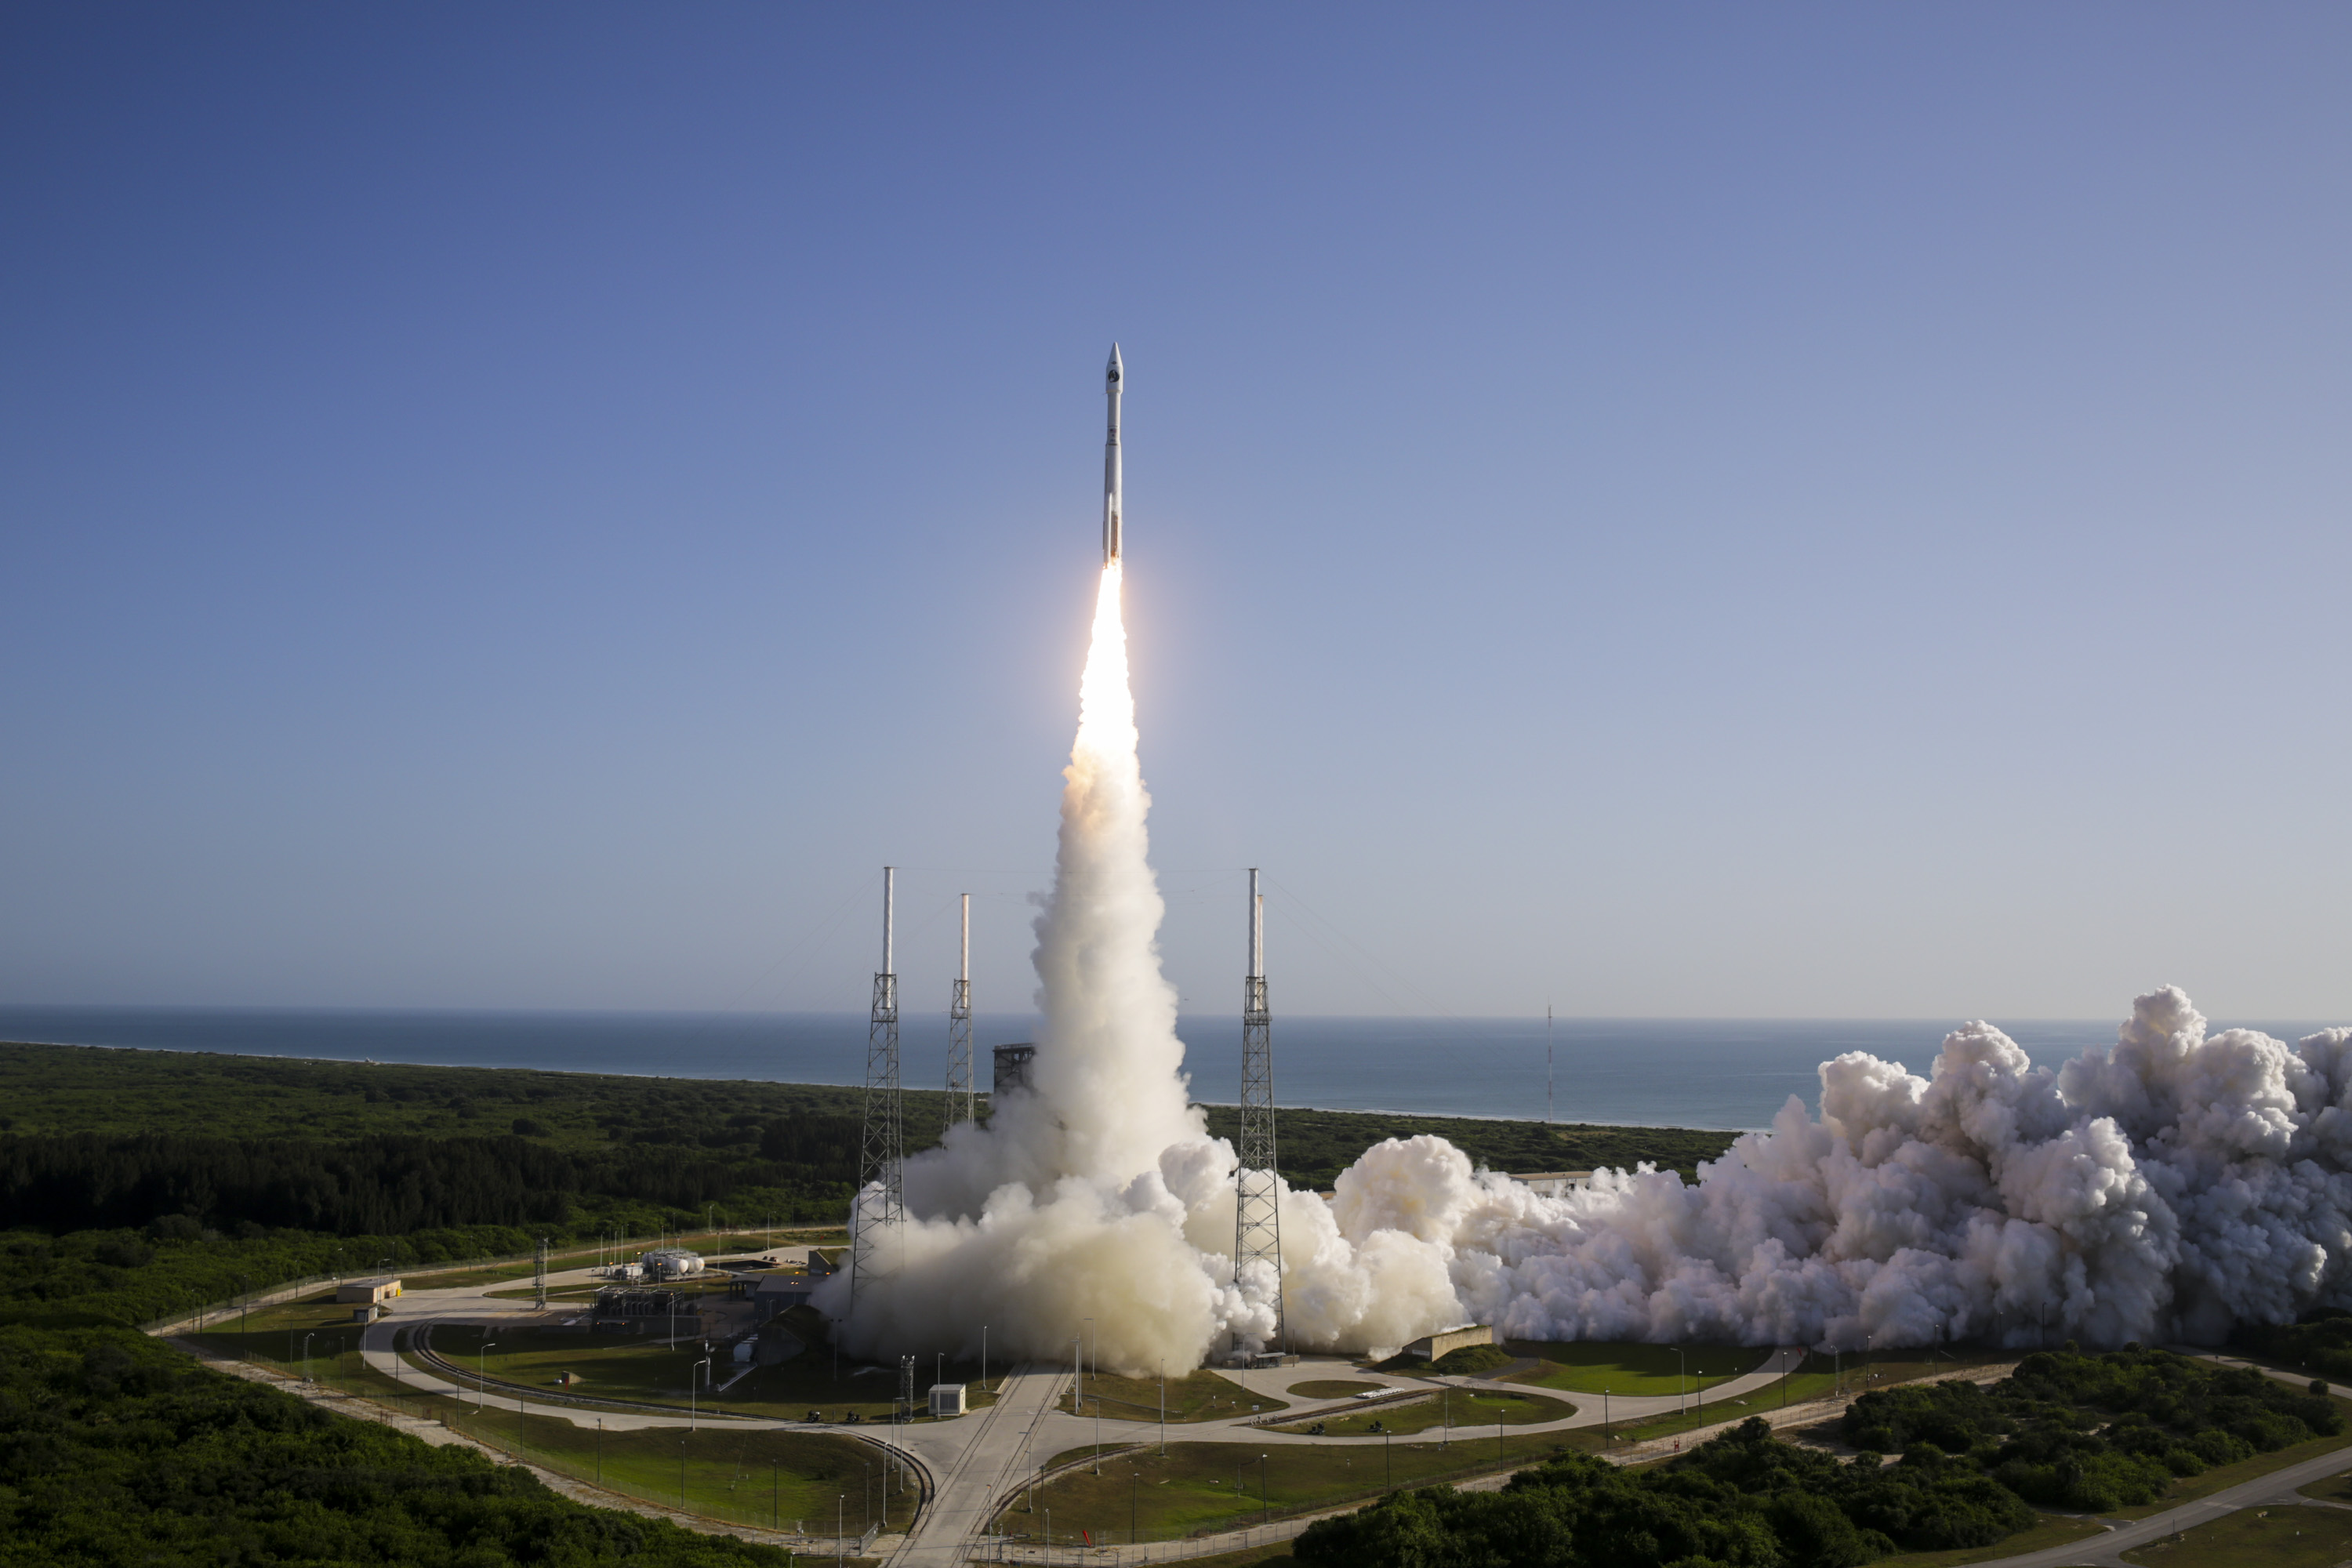 New American Spy Satellite Launches on Secret Mission